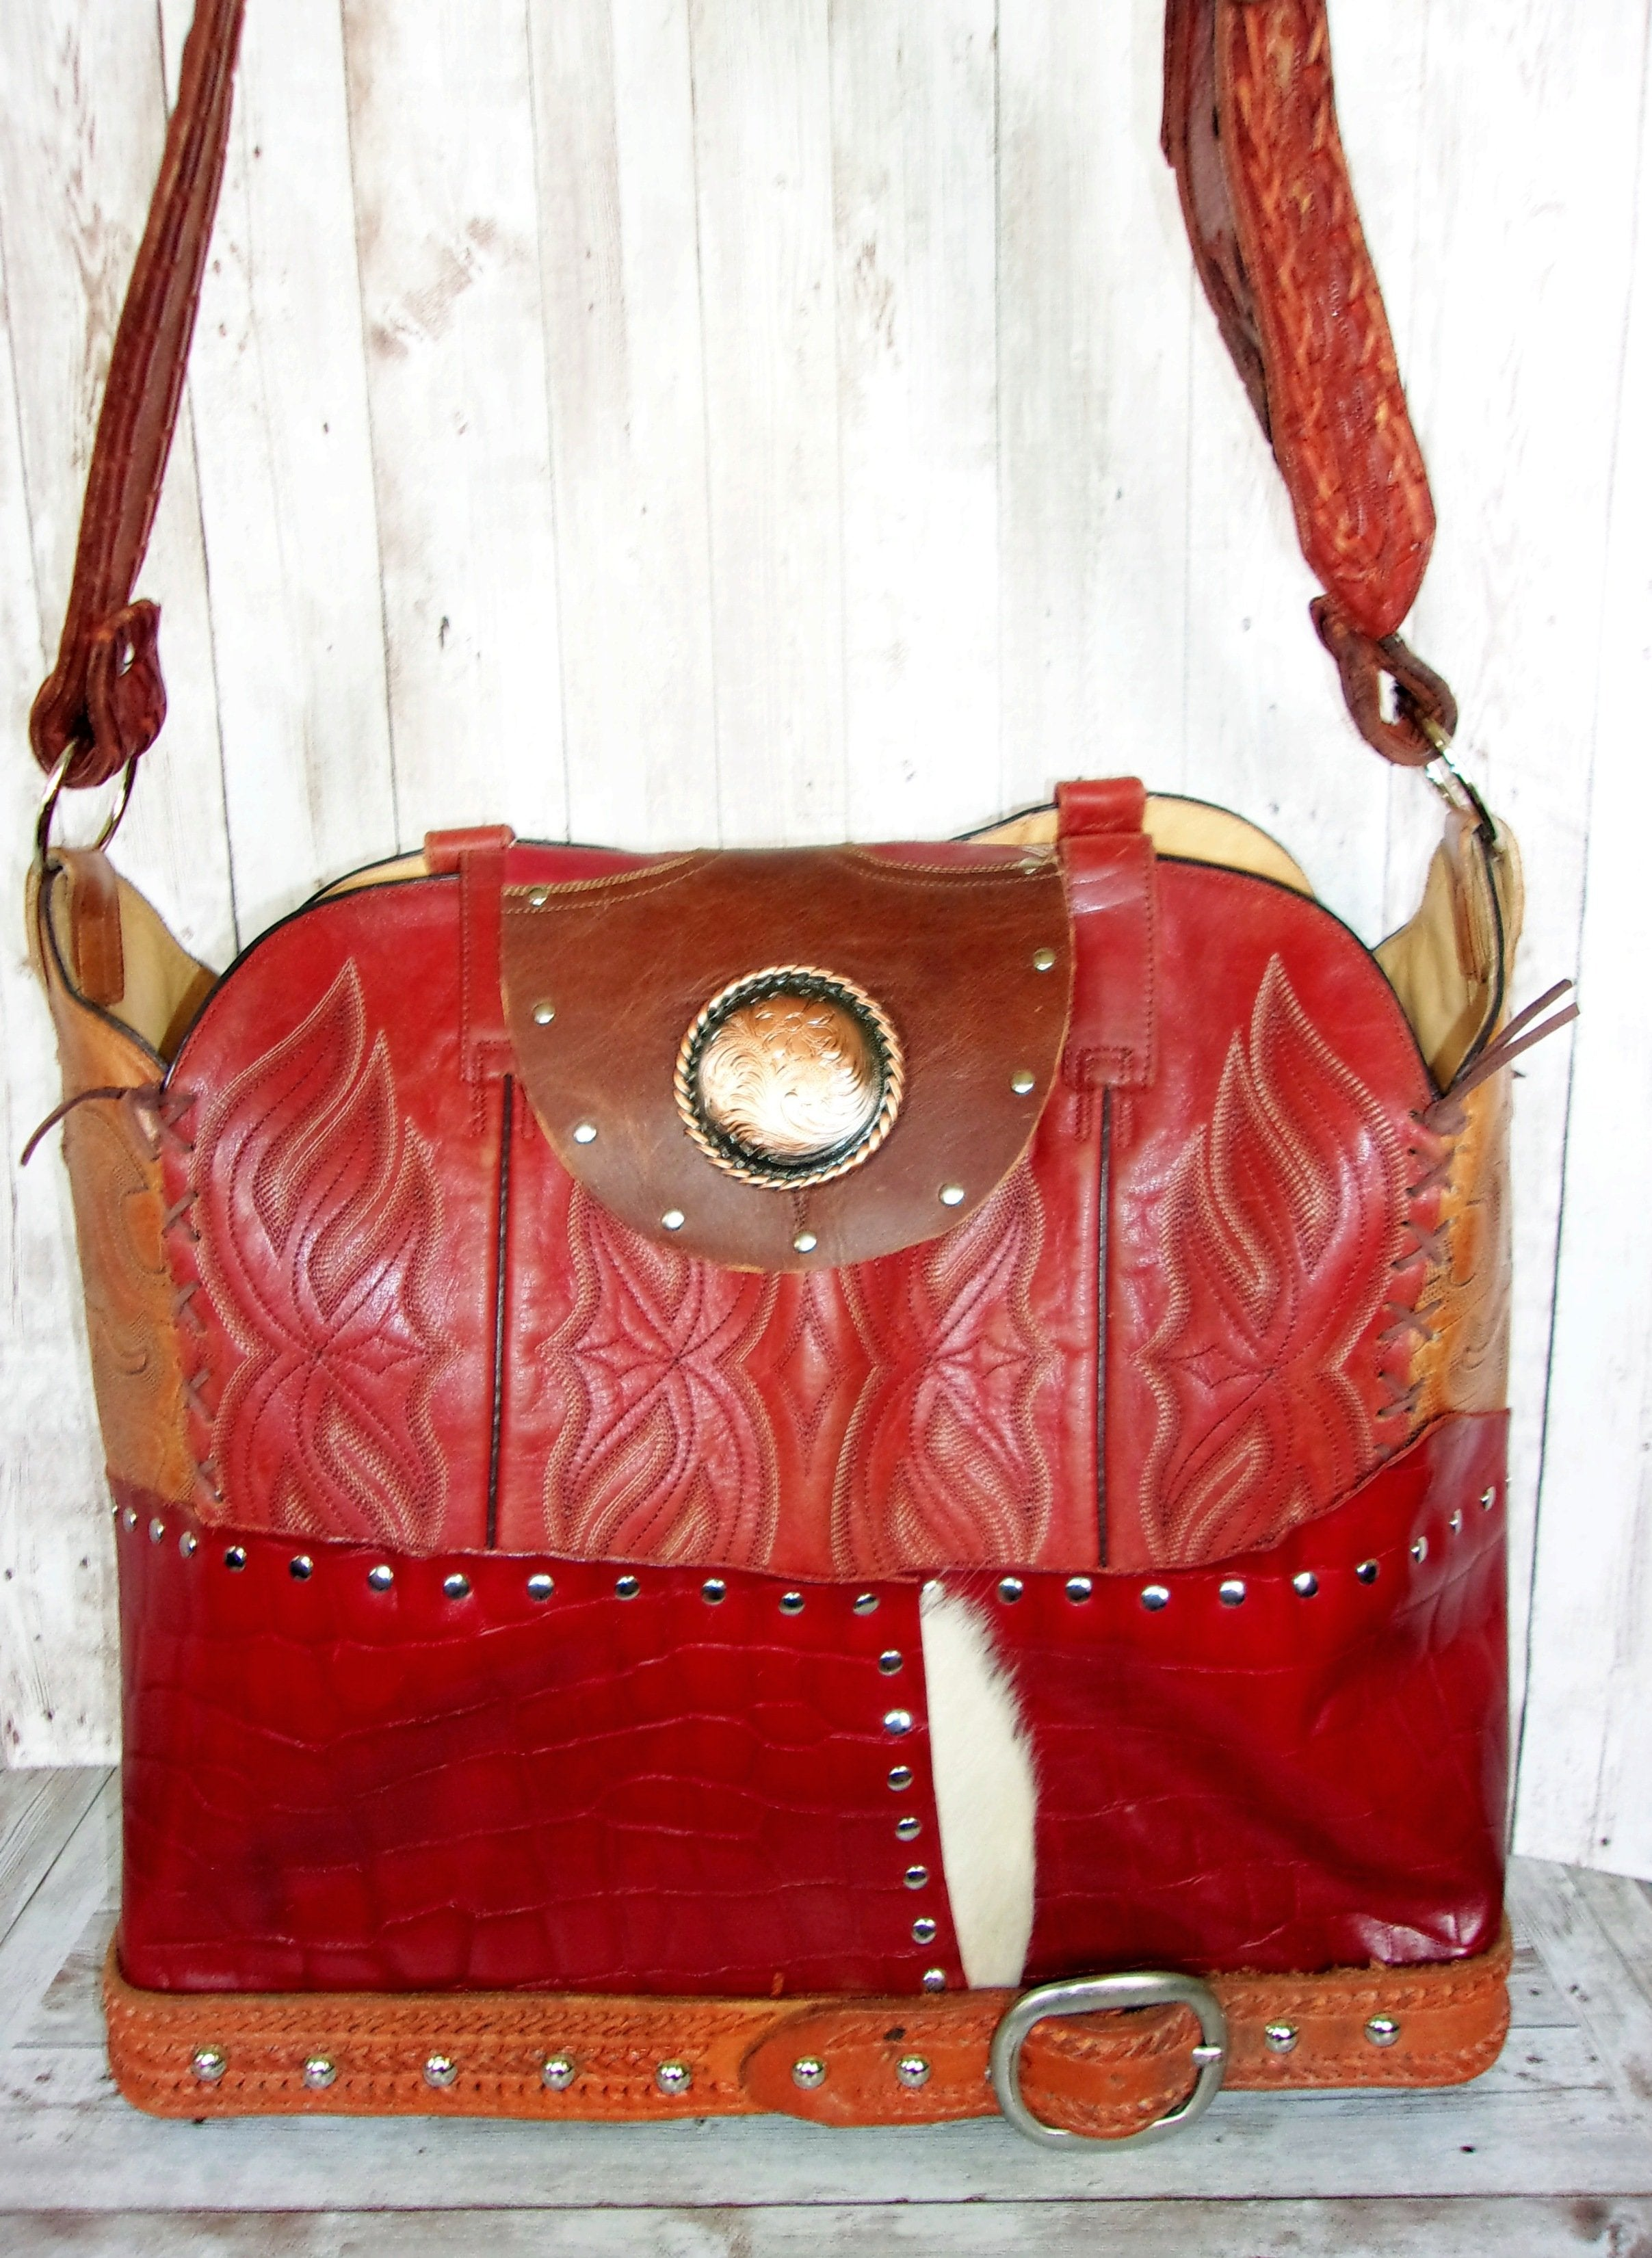 Large Red Croc Leather Tote LT32 - Cowboy Boot Purses by Chris Thompson for Distinctive Western Fashion